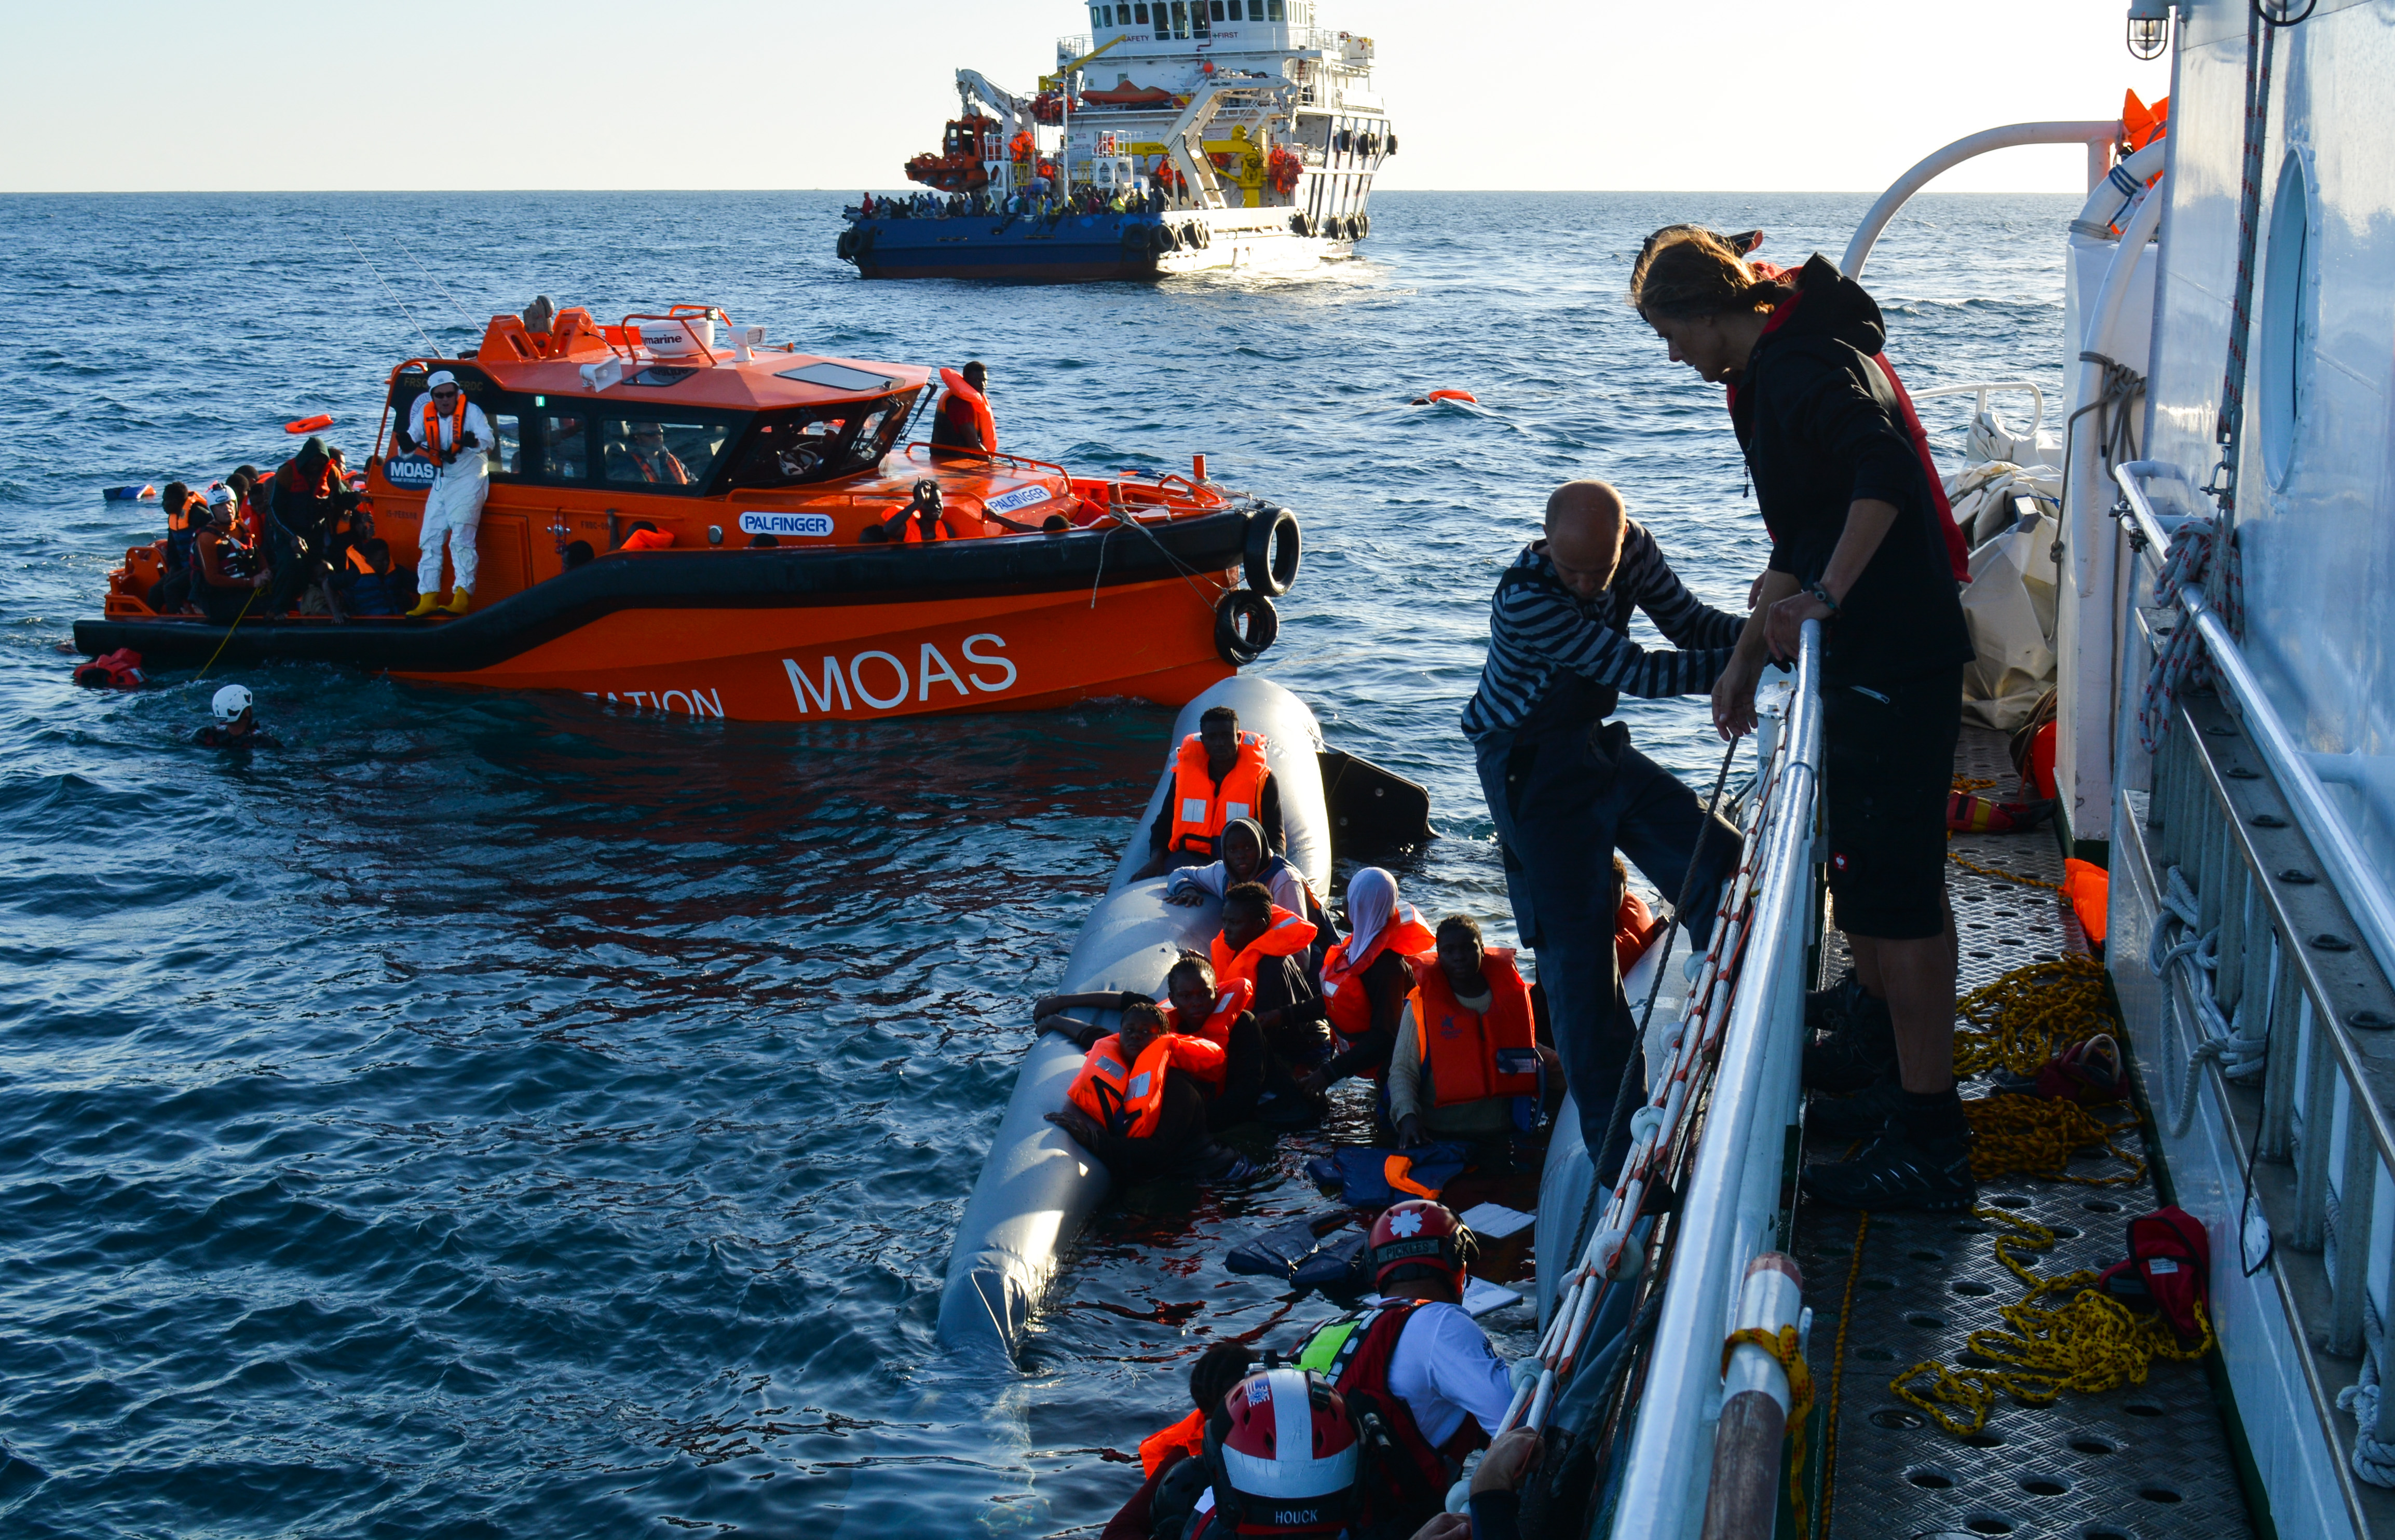 <p>Rescuers pull refugees from the Mediterranean Sea after their rubber boat capsized roughly 20 miles off the coast of Libya on Nov. 22, 2016. Overcrowded boats like this sink with some regularity, often with numerous fatalities.</p>